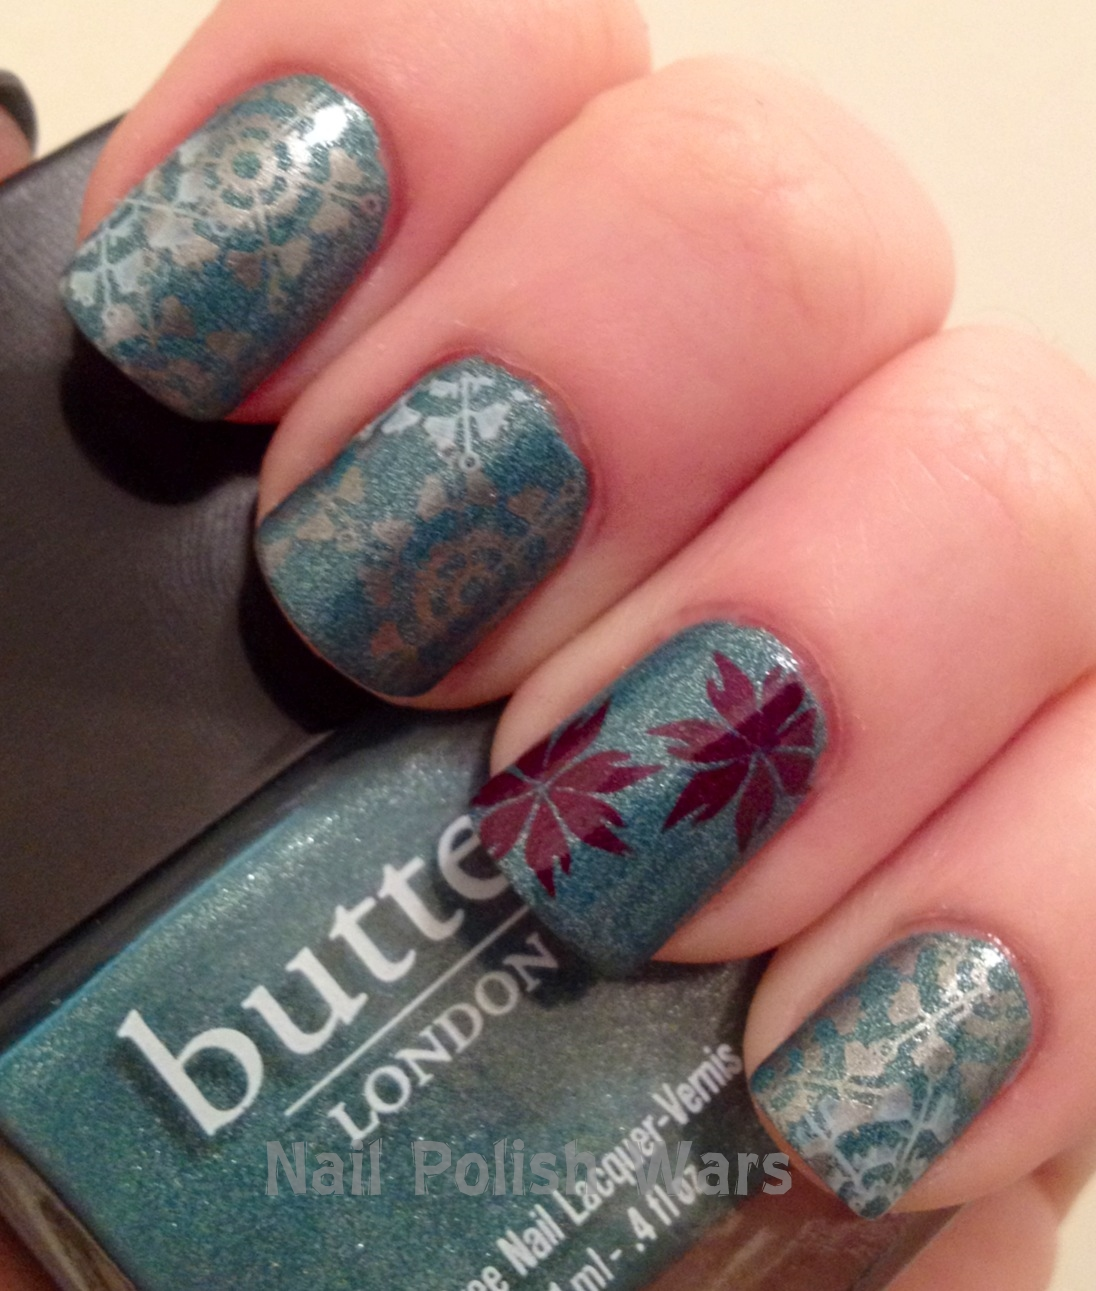 Prettyfulz Fall Nail Art Design 2011: Nail Polish Wars: Snow Fall On Poinsettias